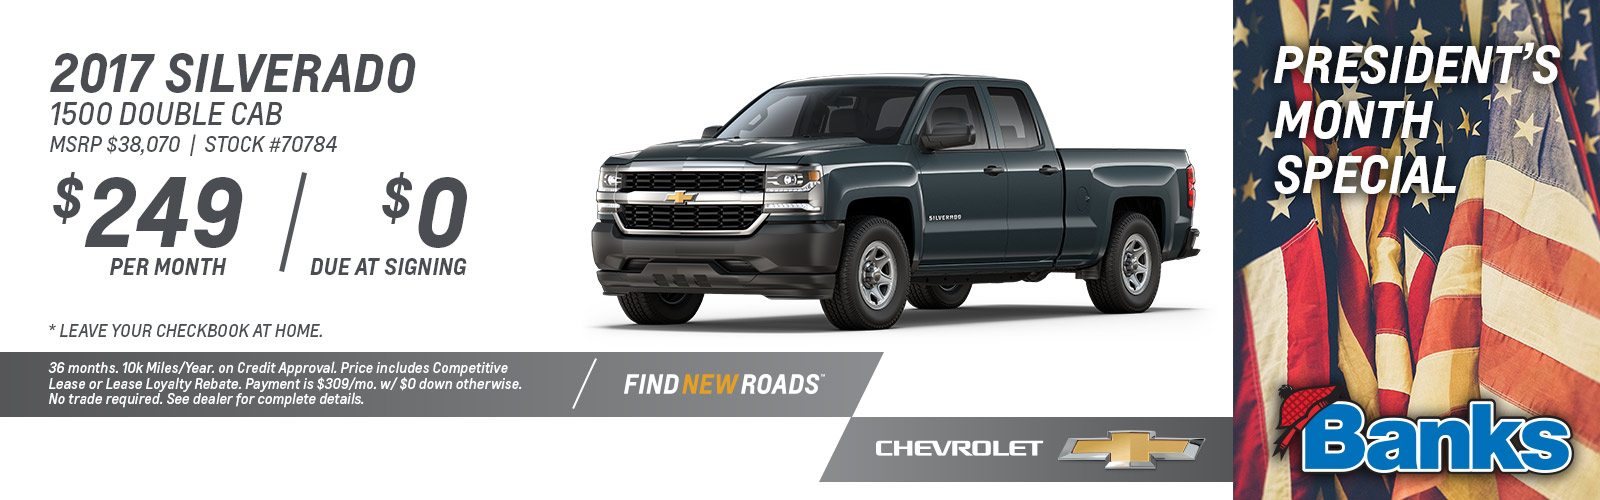 2017 Chevy Silverado 1500 Double Cab President's Day Special